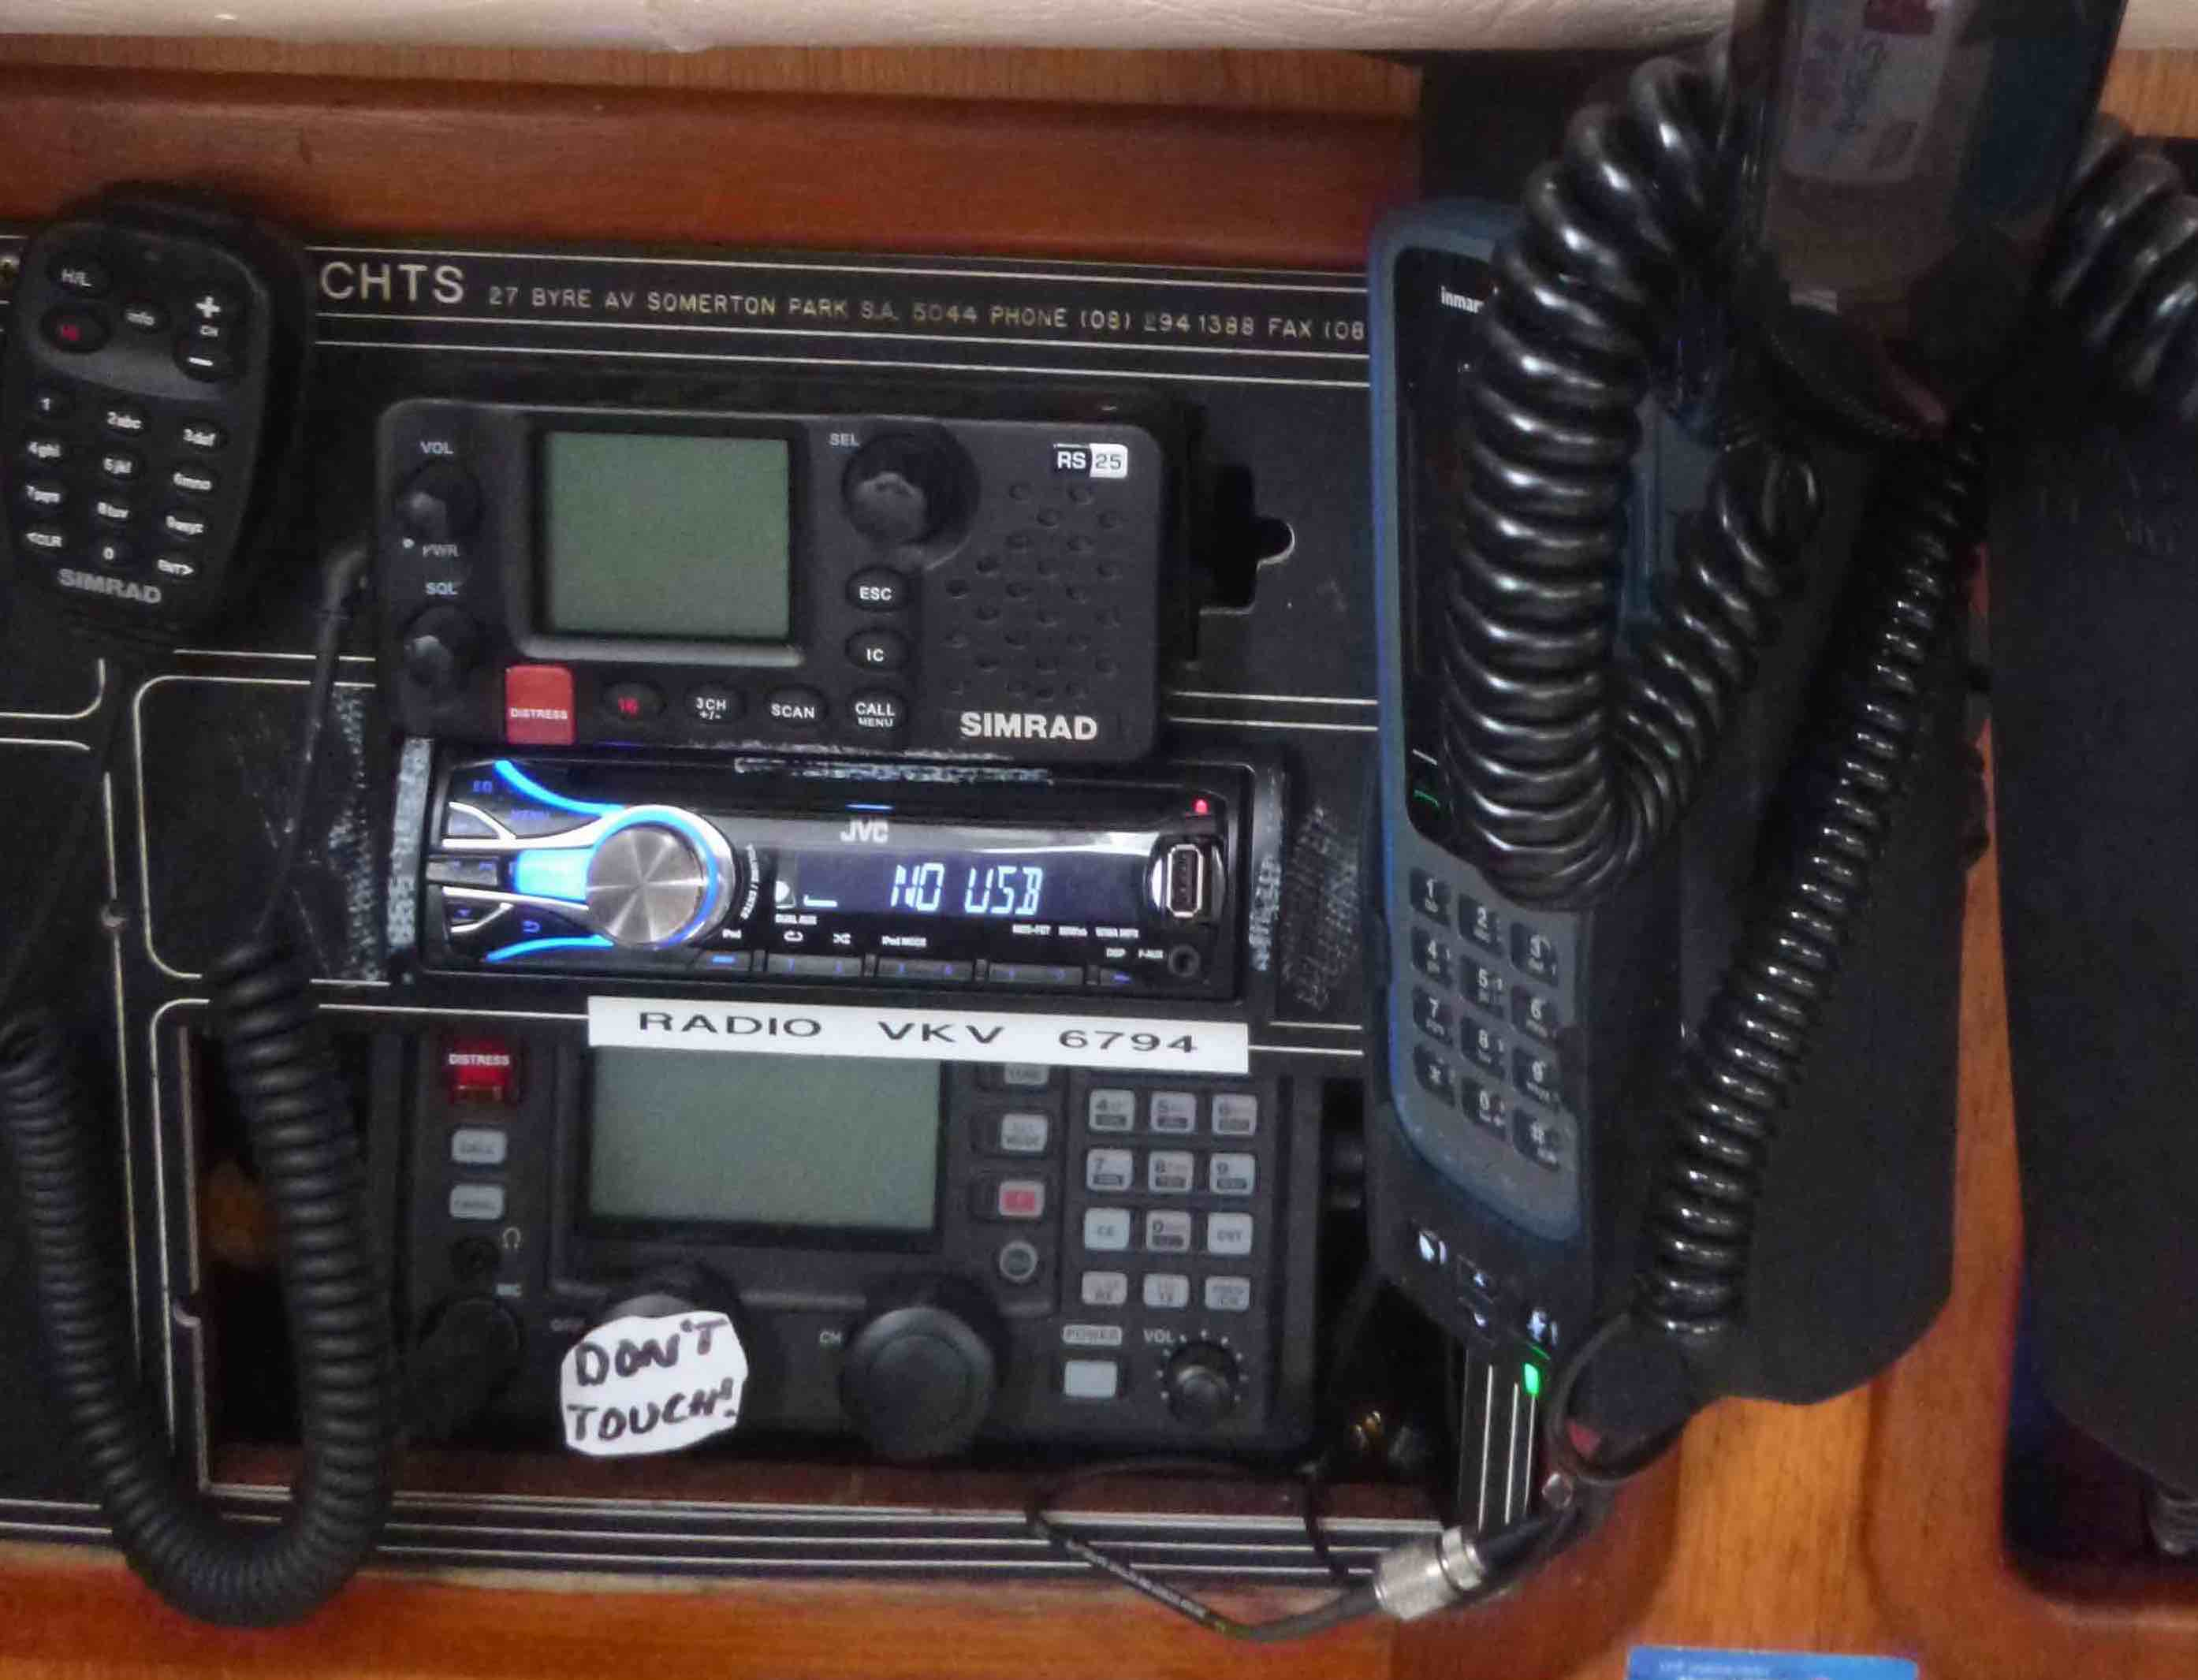 Typical VHF and HF setup, note the stereo and Satellite phone as well